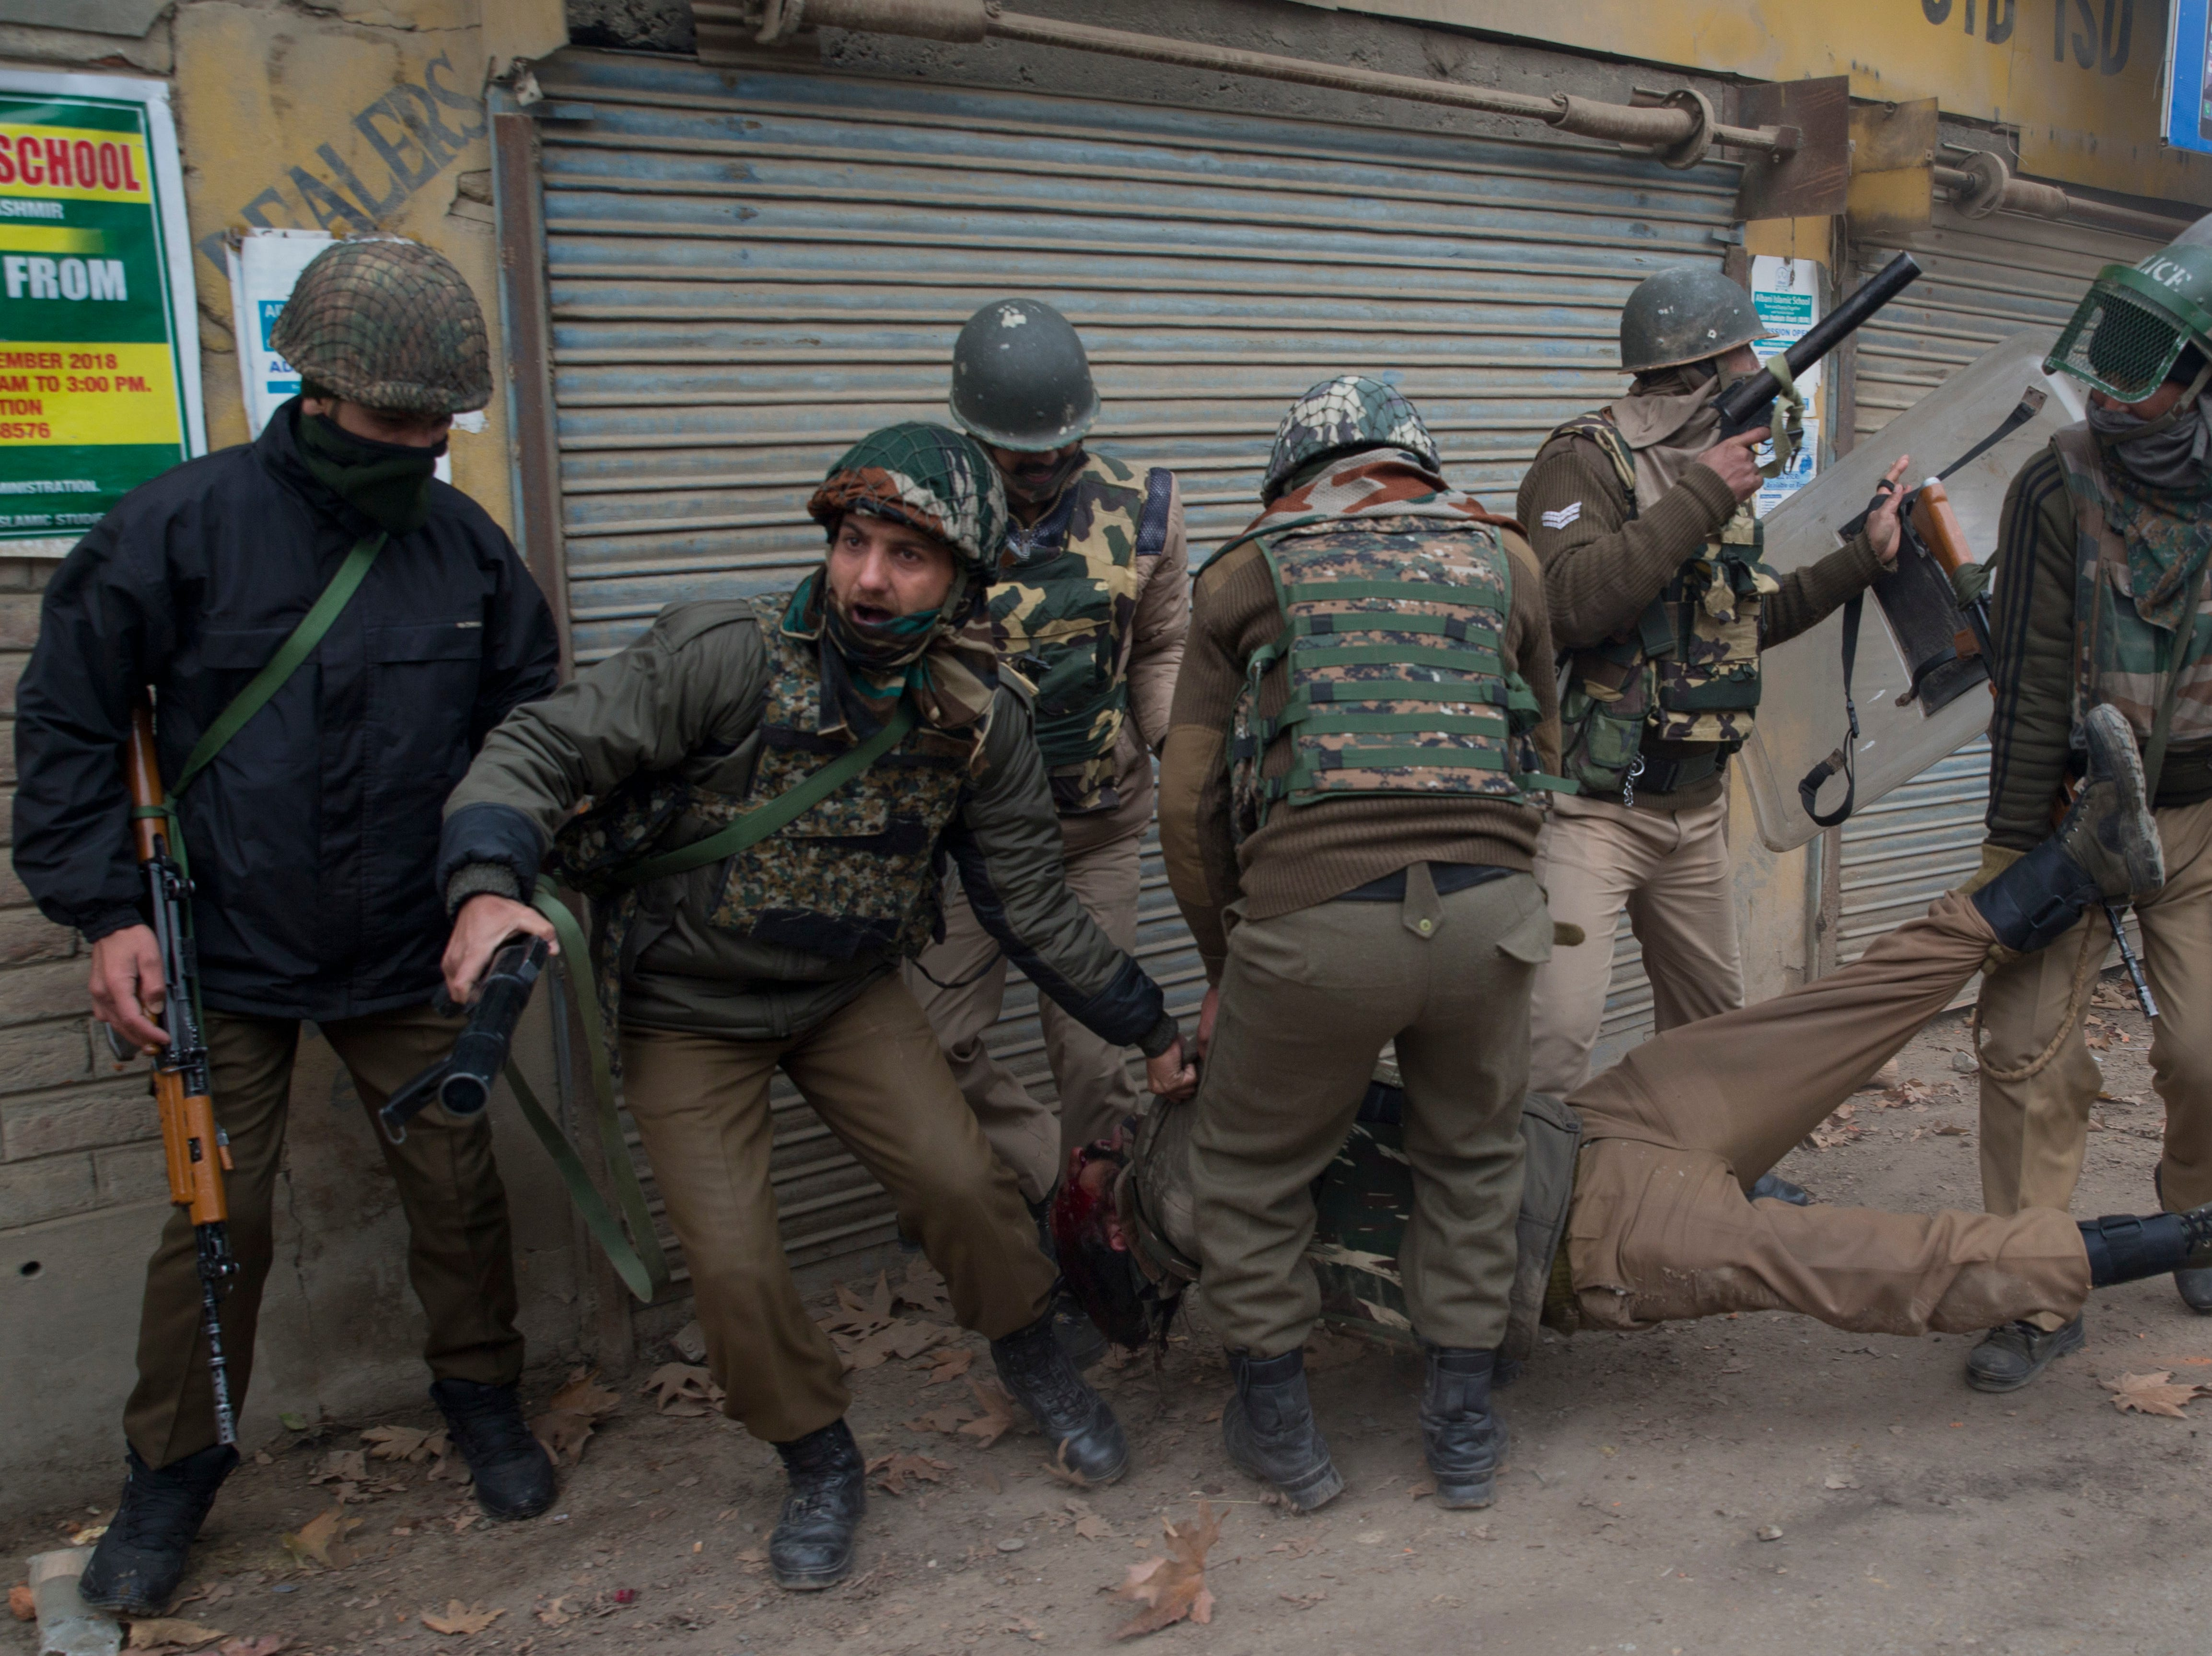 Indian paramilitary soldiers rush to help their colleague wounded during a clash with protesters near the site of  a gunfight in Badgam district, Indian-controlled Kashmir, Wednesday, Nov. 28, 2018. Police say they have killed an alleged Pakistani militant accused in the death of a prominent journalist.